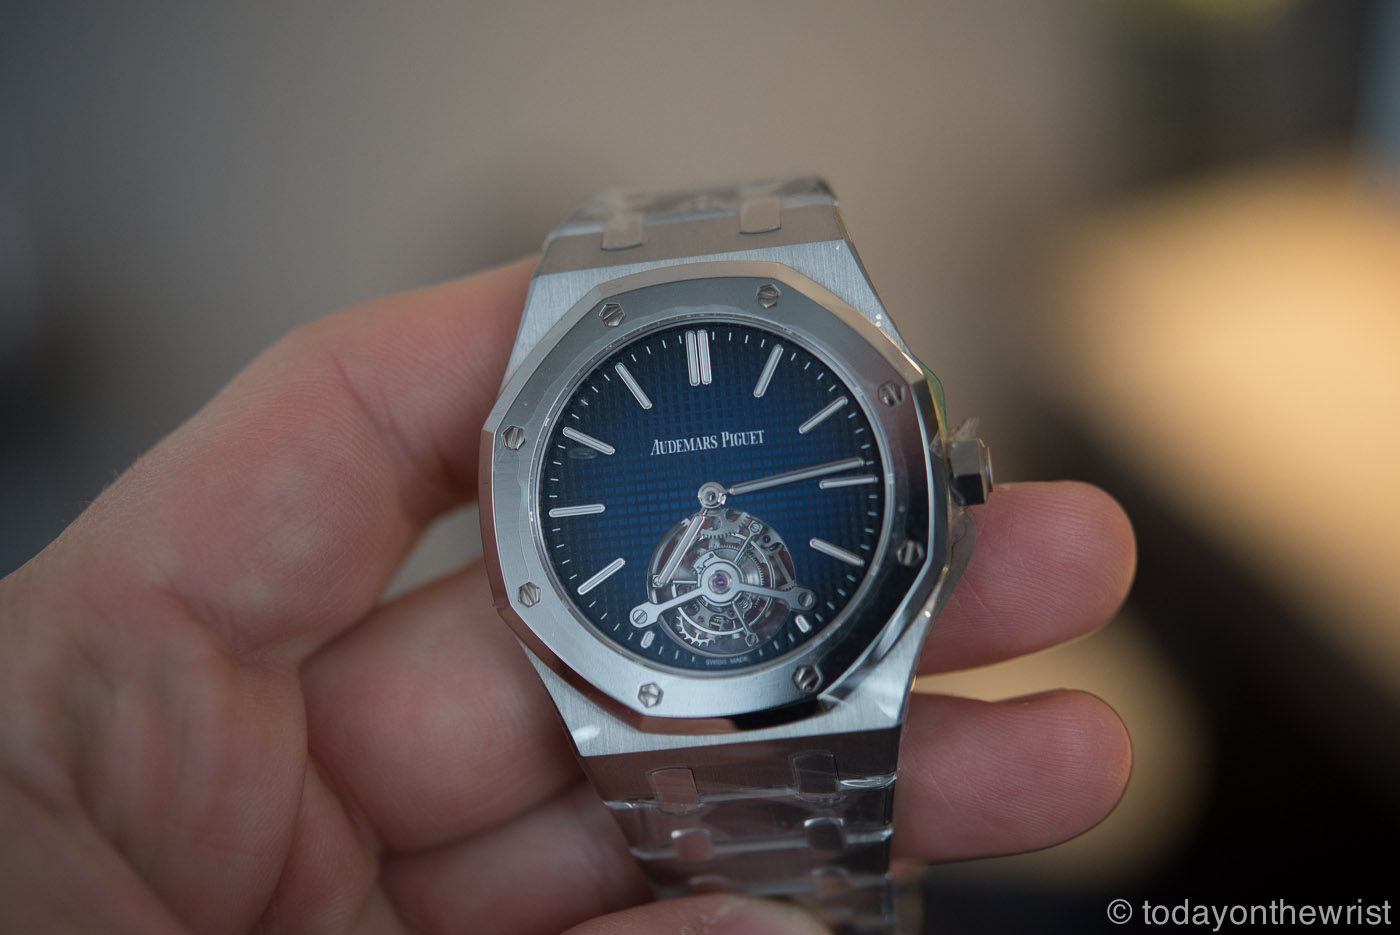 Audemars Piguet Royal Oak Tourbillon titanium platinum